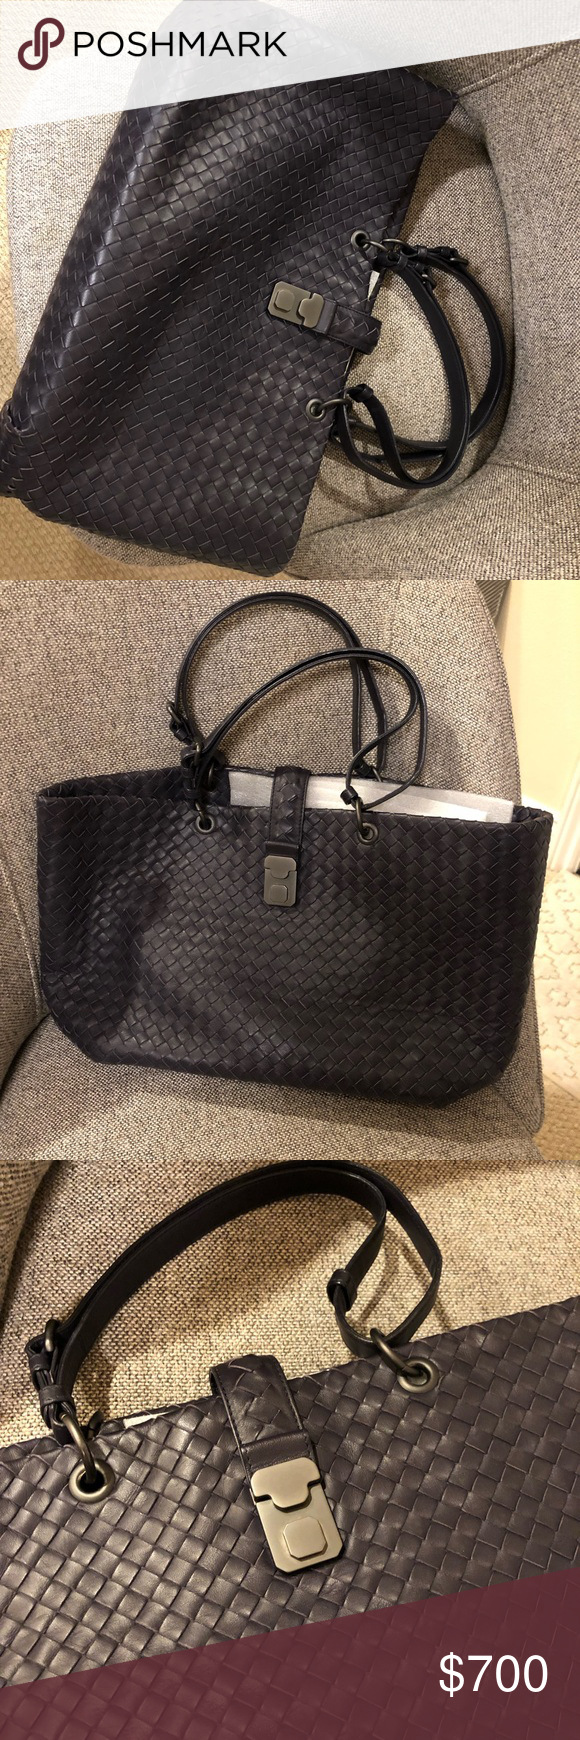 Borrego Veneta Bag Mint Condition Carefully Stored In Dust Bag And Barely Used 100 Authentic Posh Free Authentication Bags Bottega Veneta Bags Purple Grey